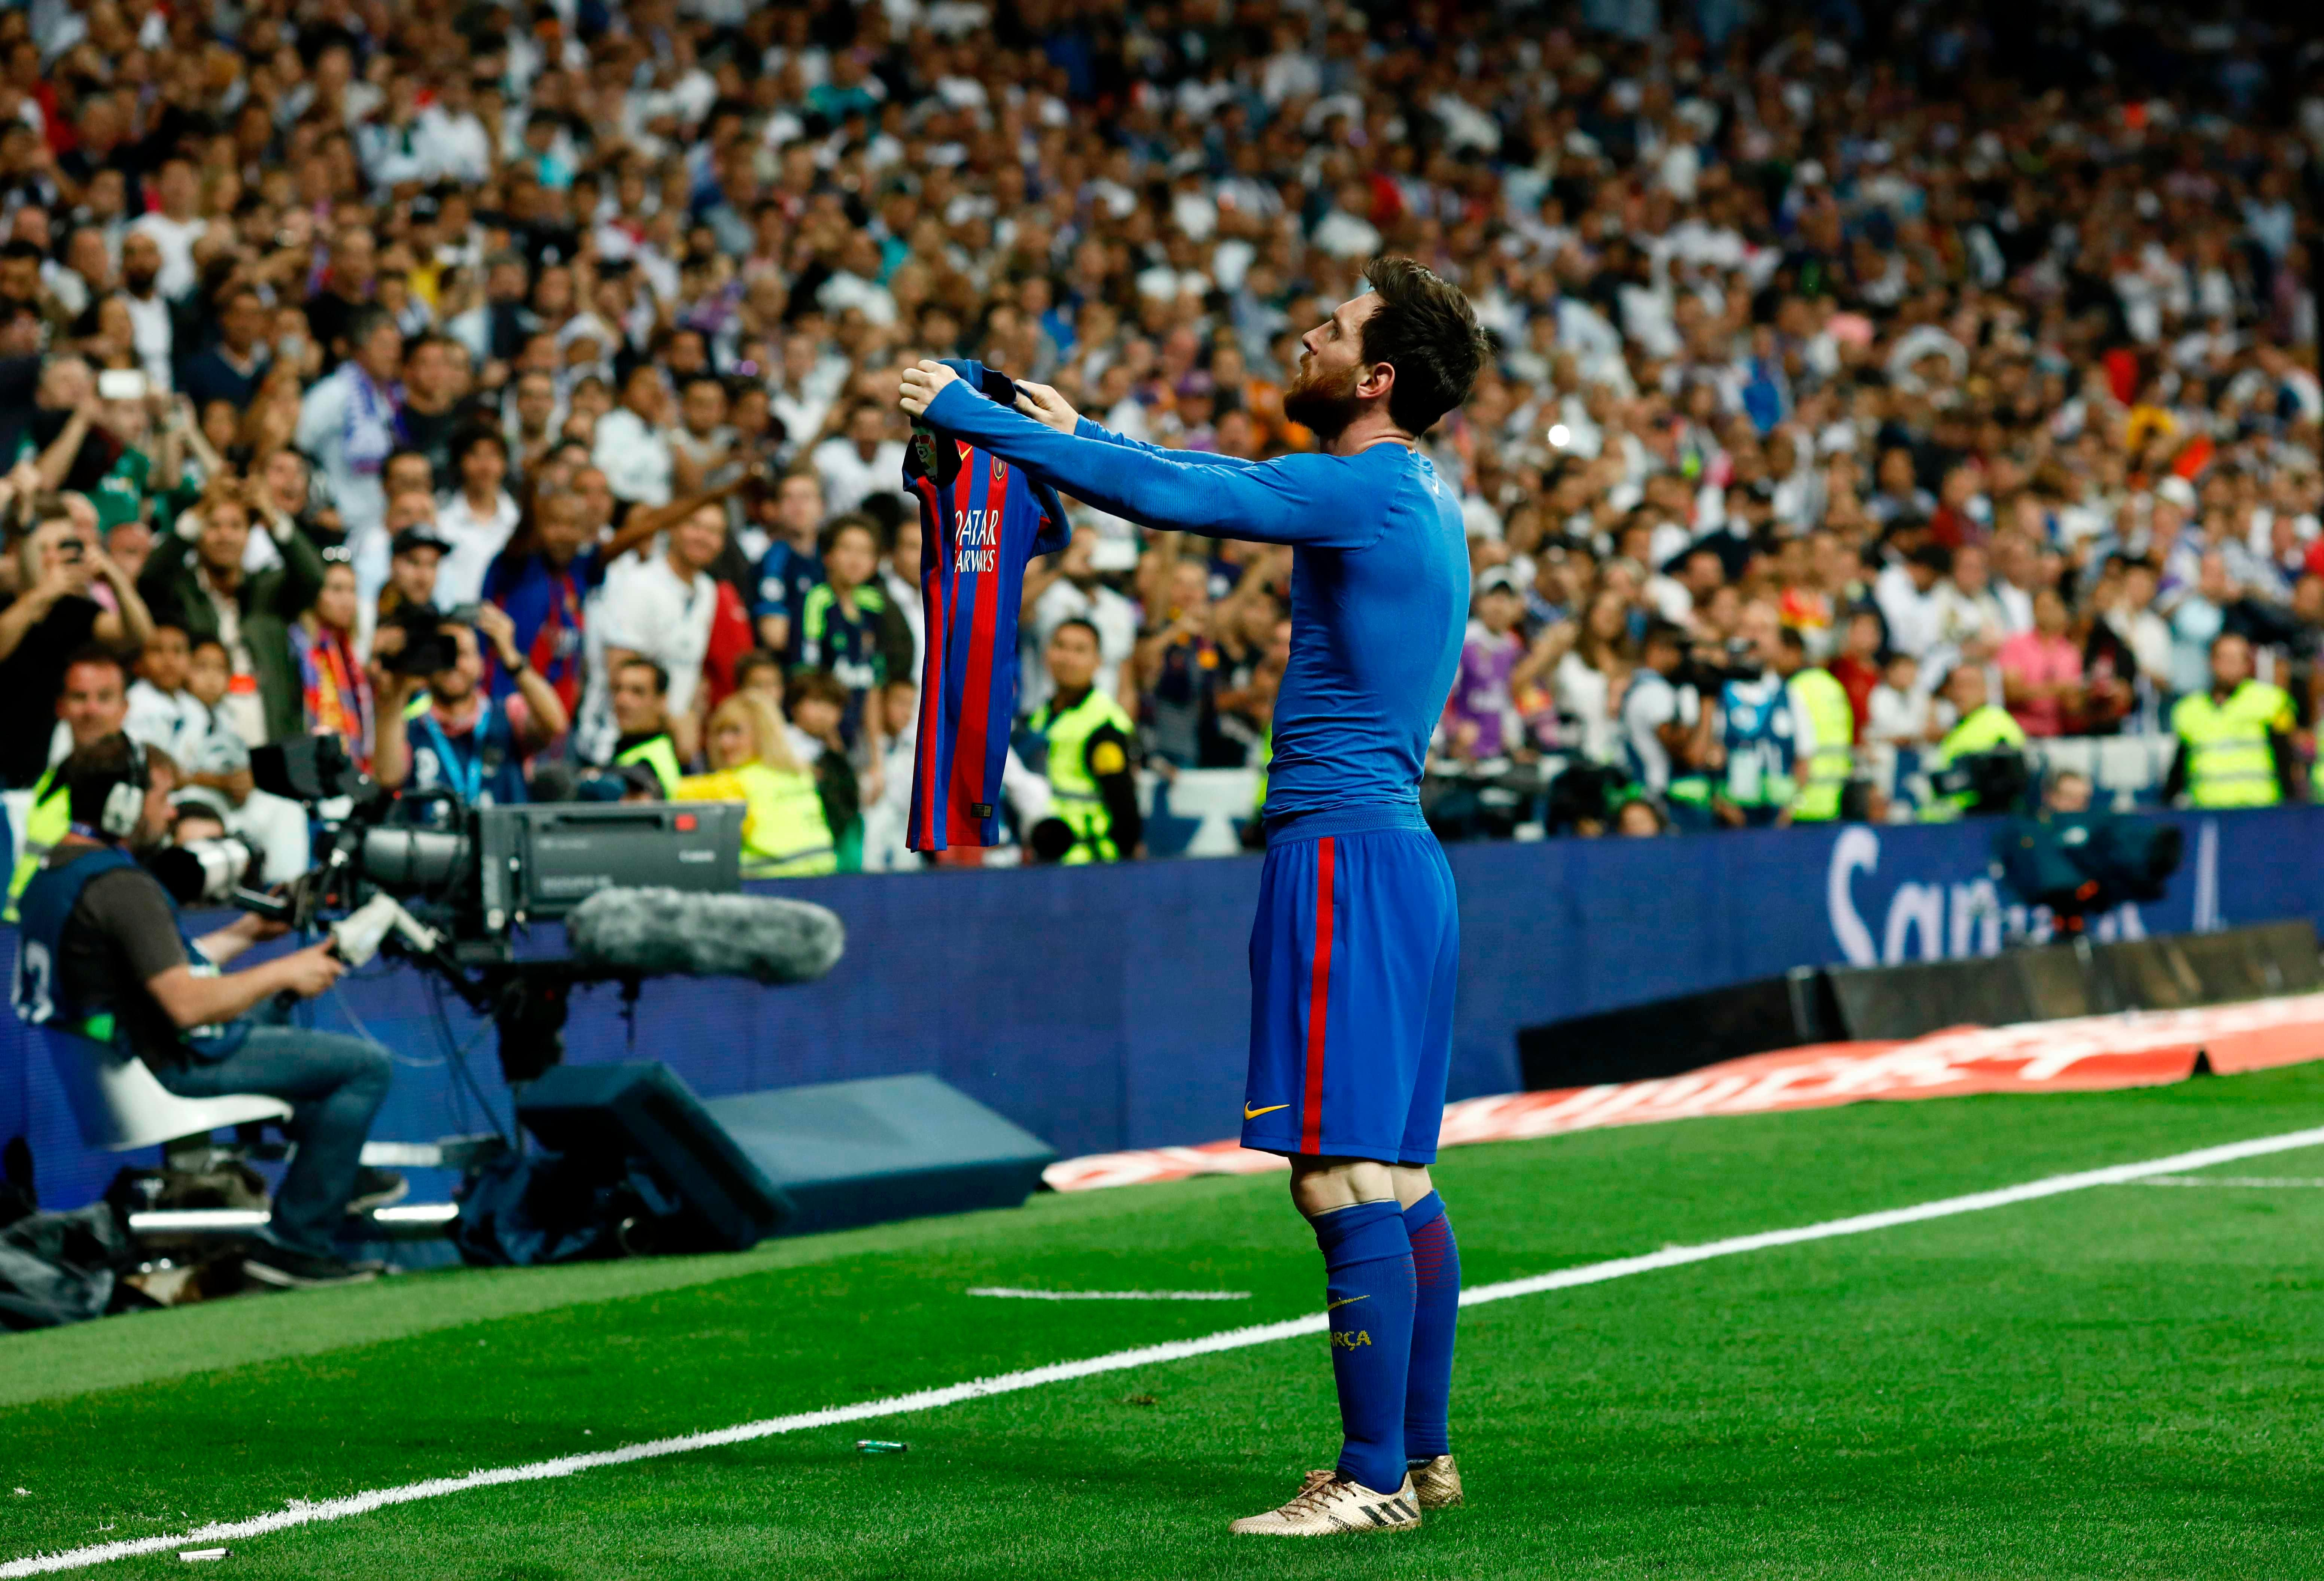 Messi's iconic celebration